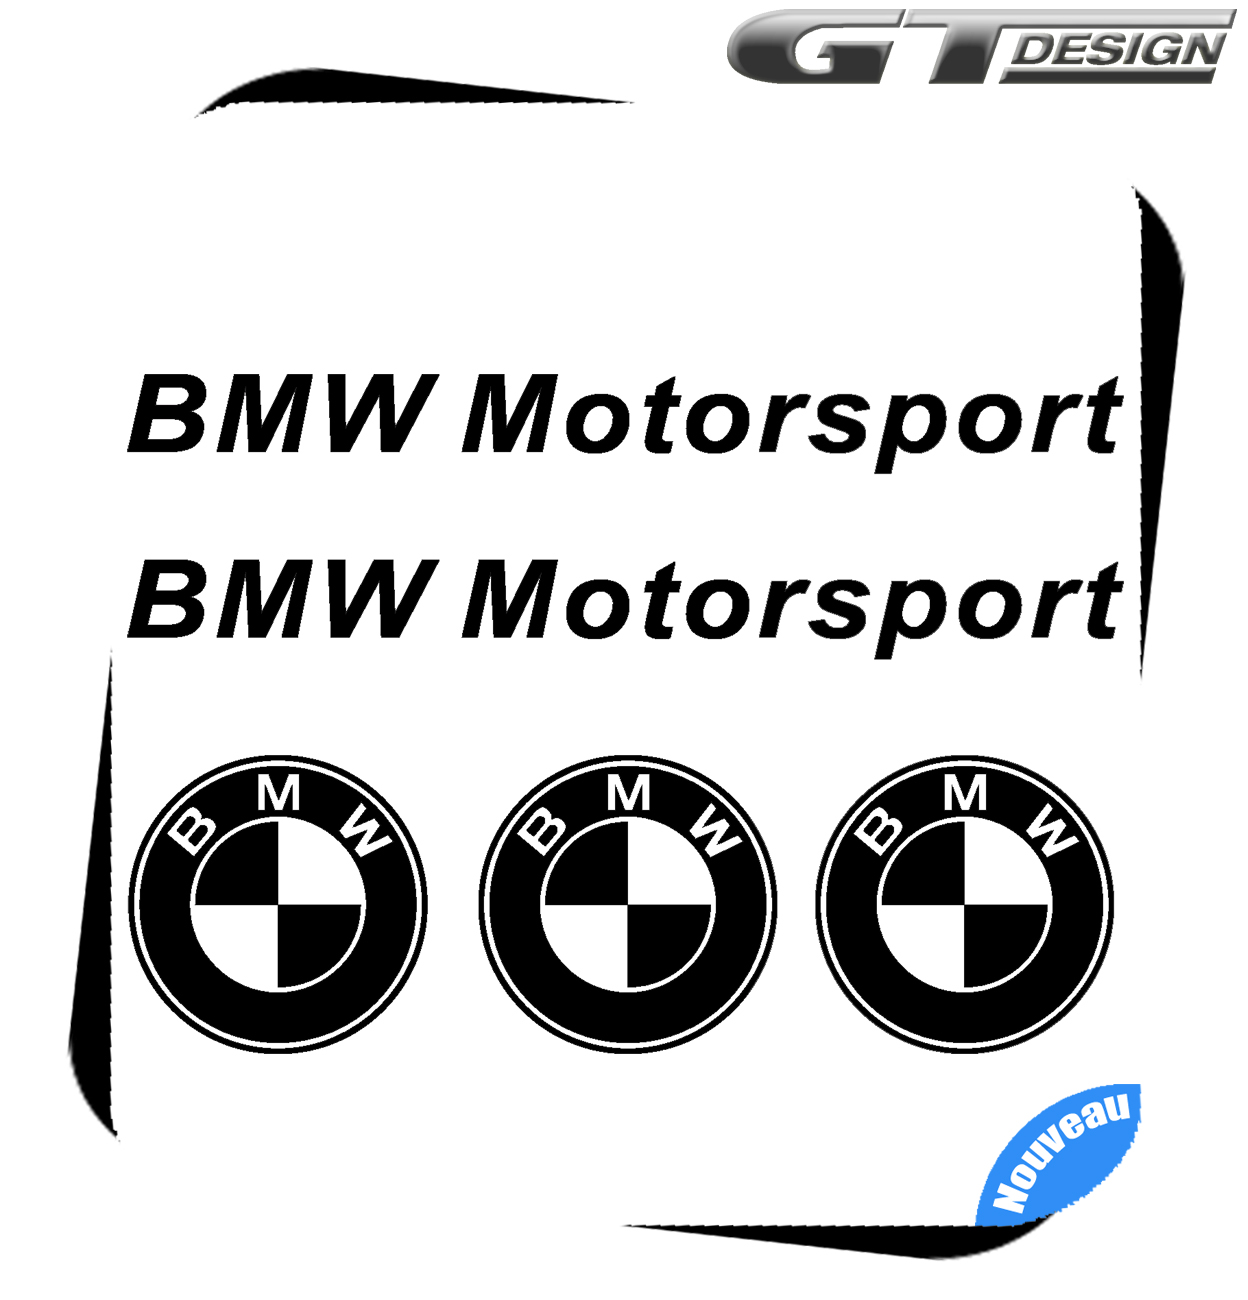 Lot De 5 Stickers Bmw Motorsport Ce Lot Comprend 3 Logos